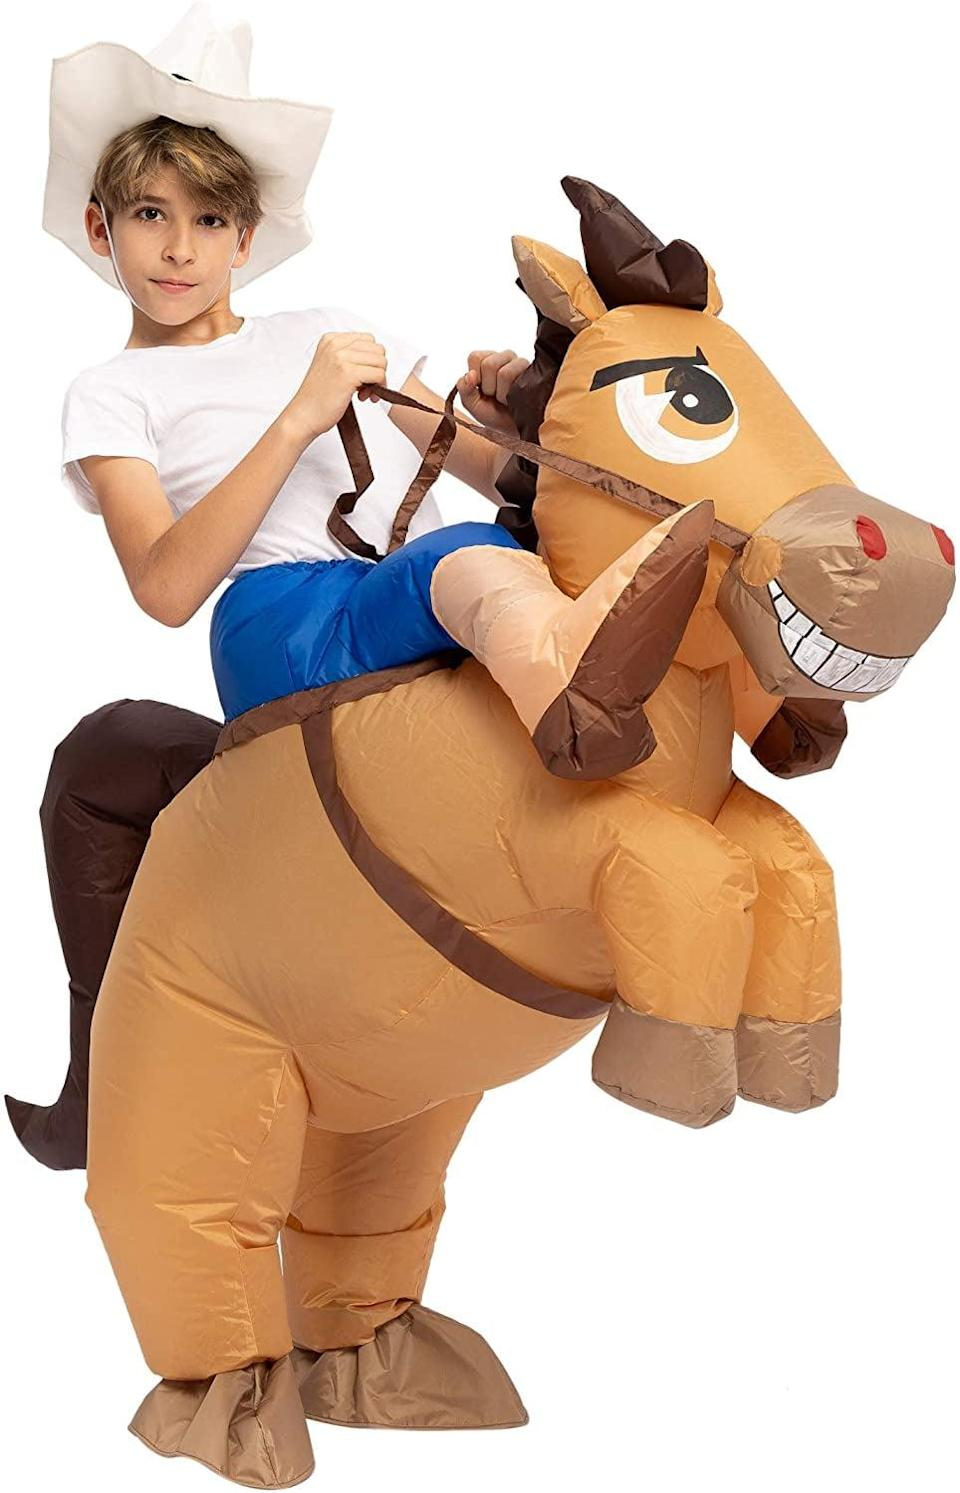 <p>Giddy on up! The <span>Spooktacular Creations Inflatable Cowboy Riding a Horse Halloween Costume </span> ($30) will make your kid look like a regular Butch Cassidy.</p>